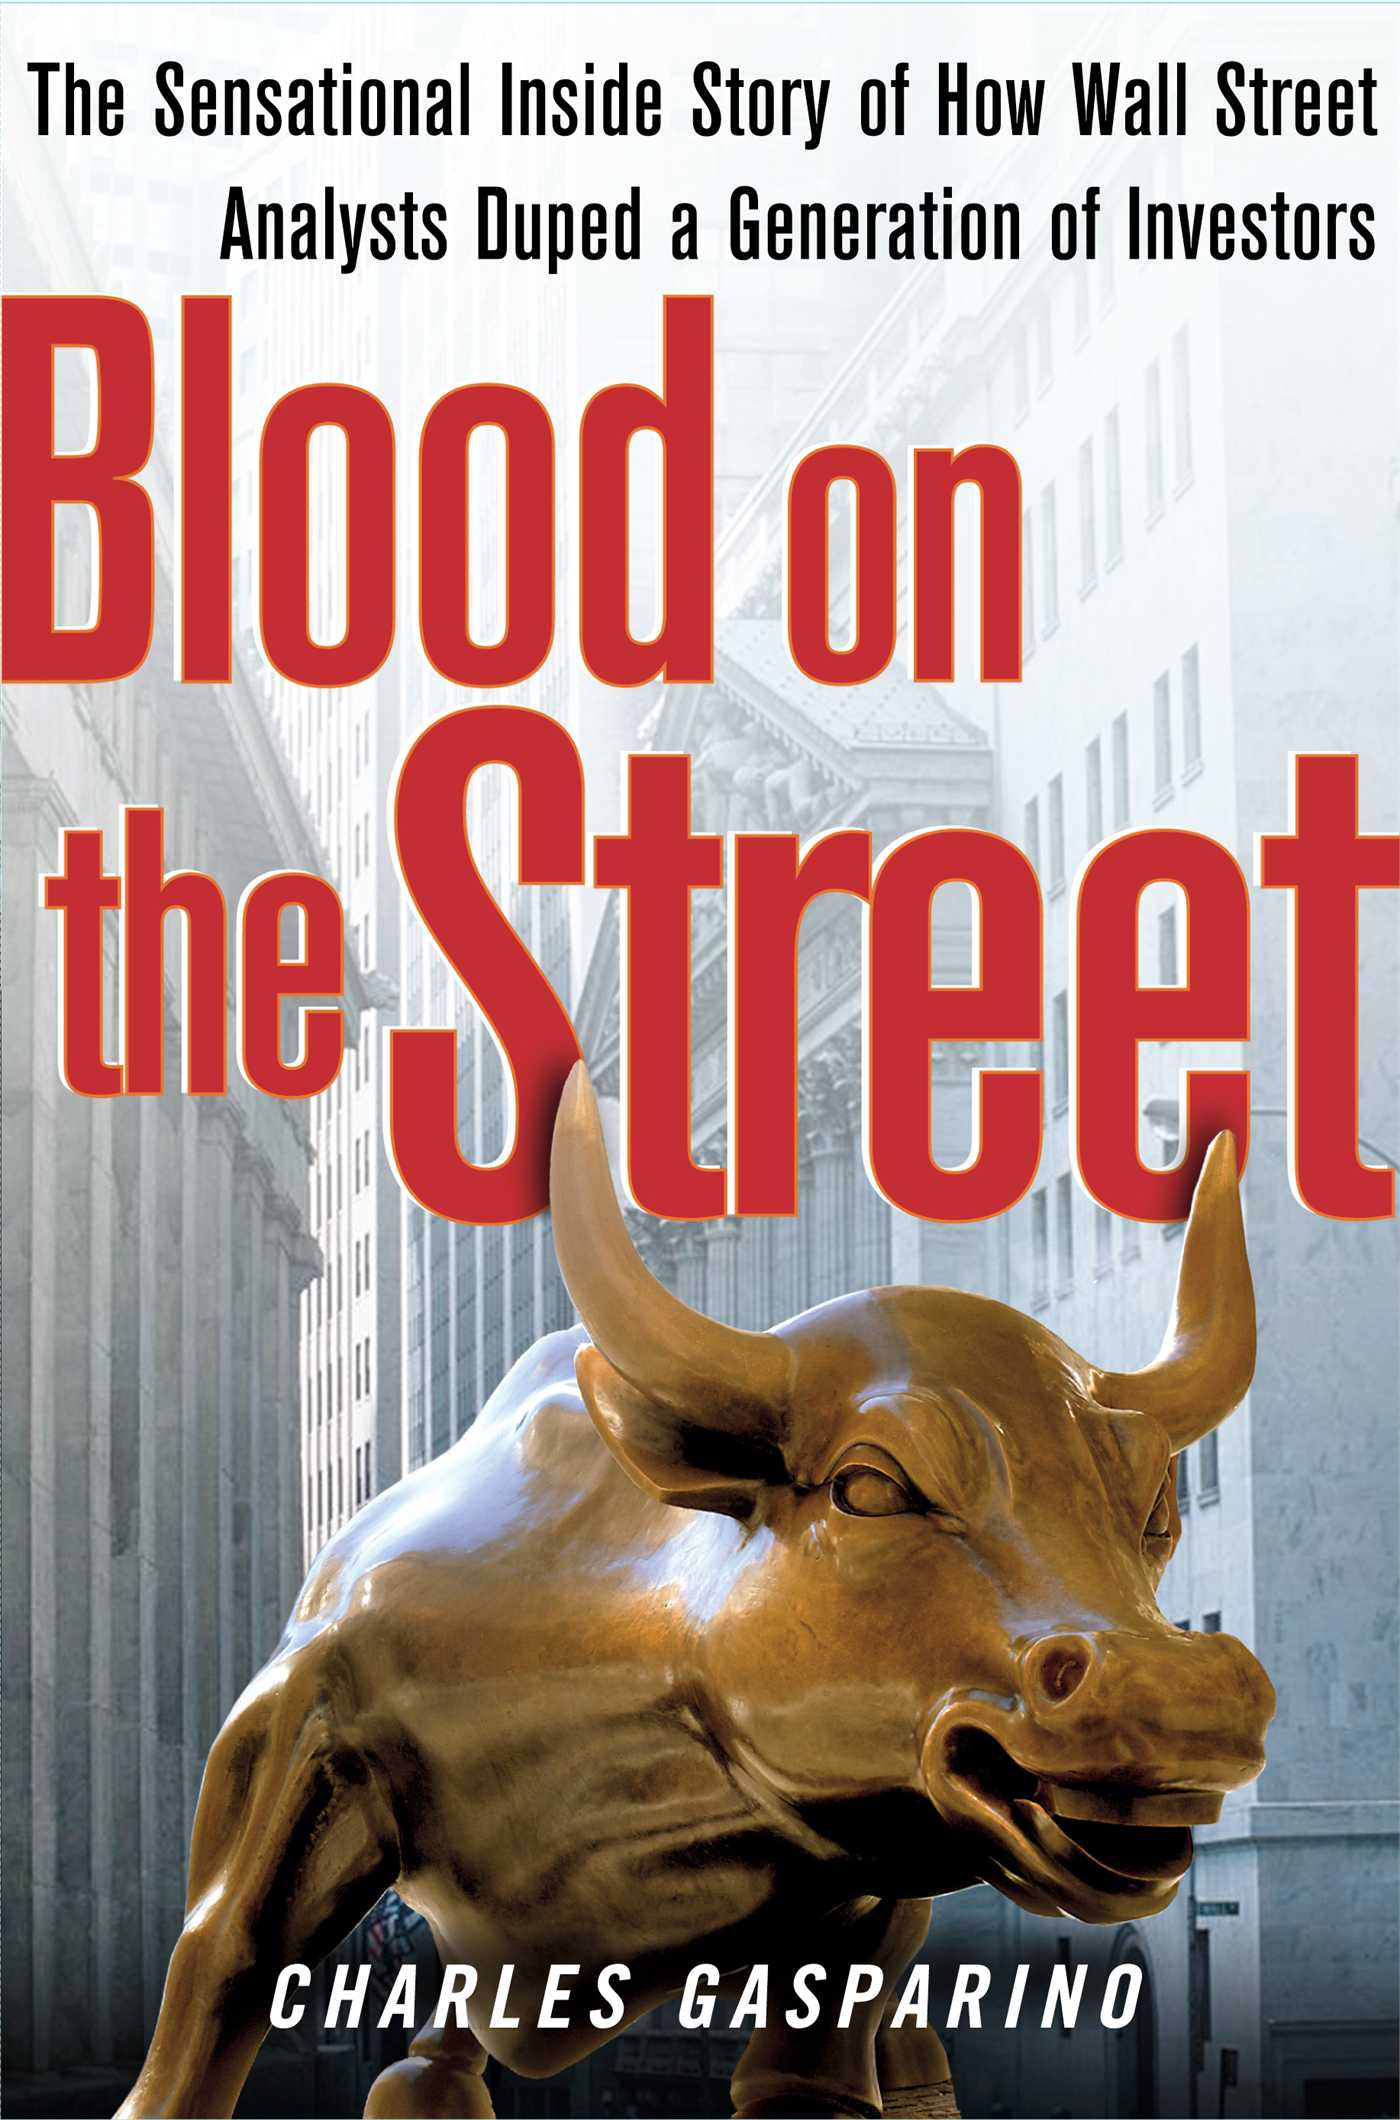 Download Ebook Blood on the Street by Charles Gasparino Pdf